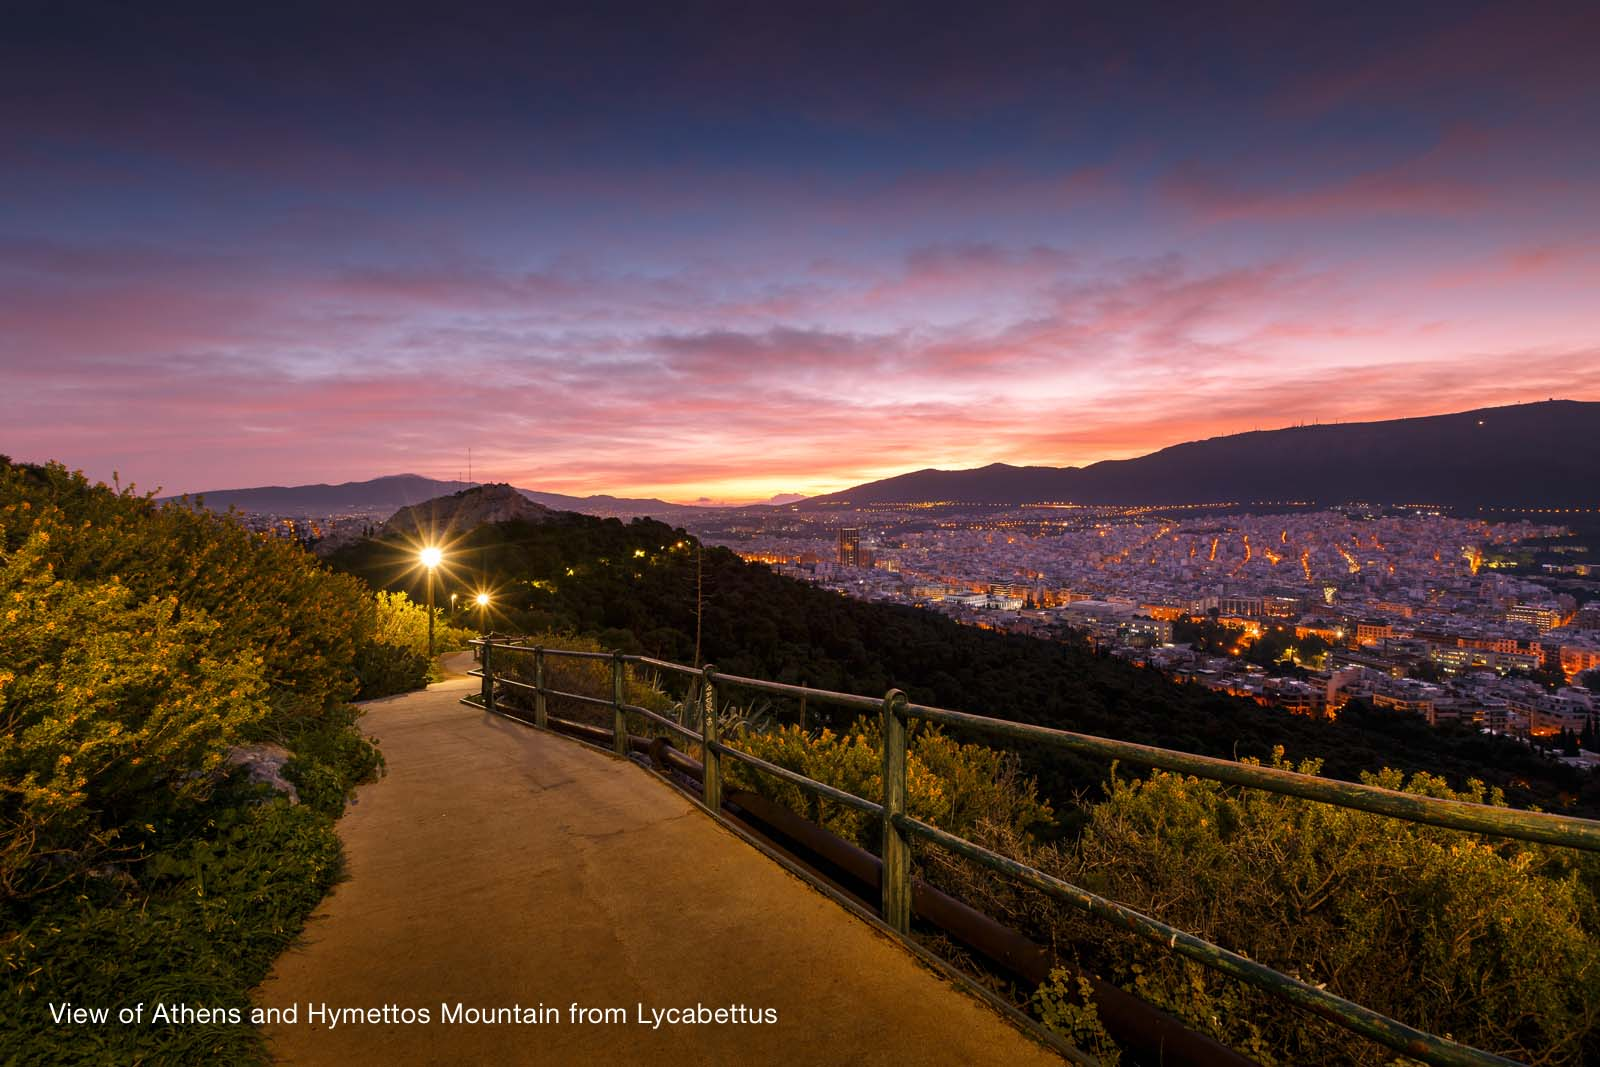 Enlarged: View of Hymettus Mountain in Athens at night